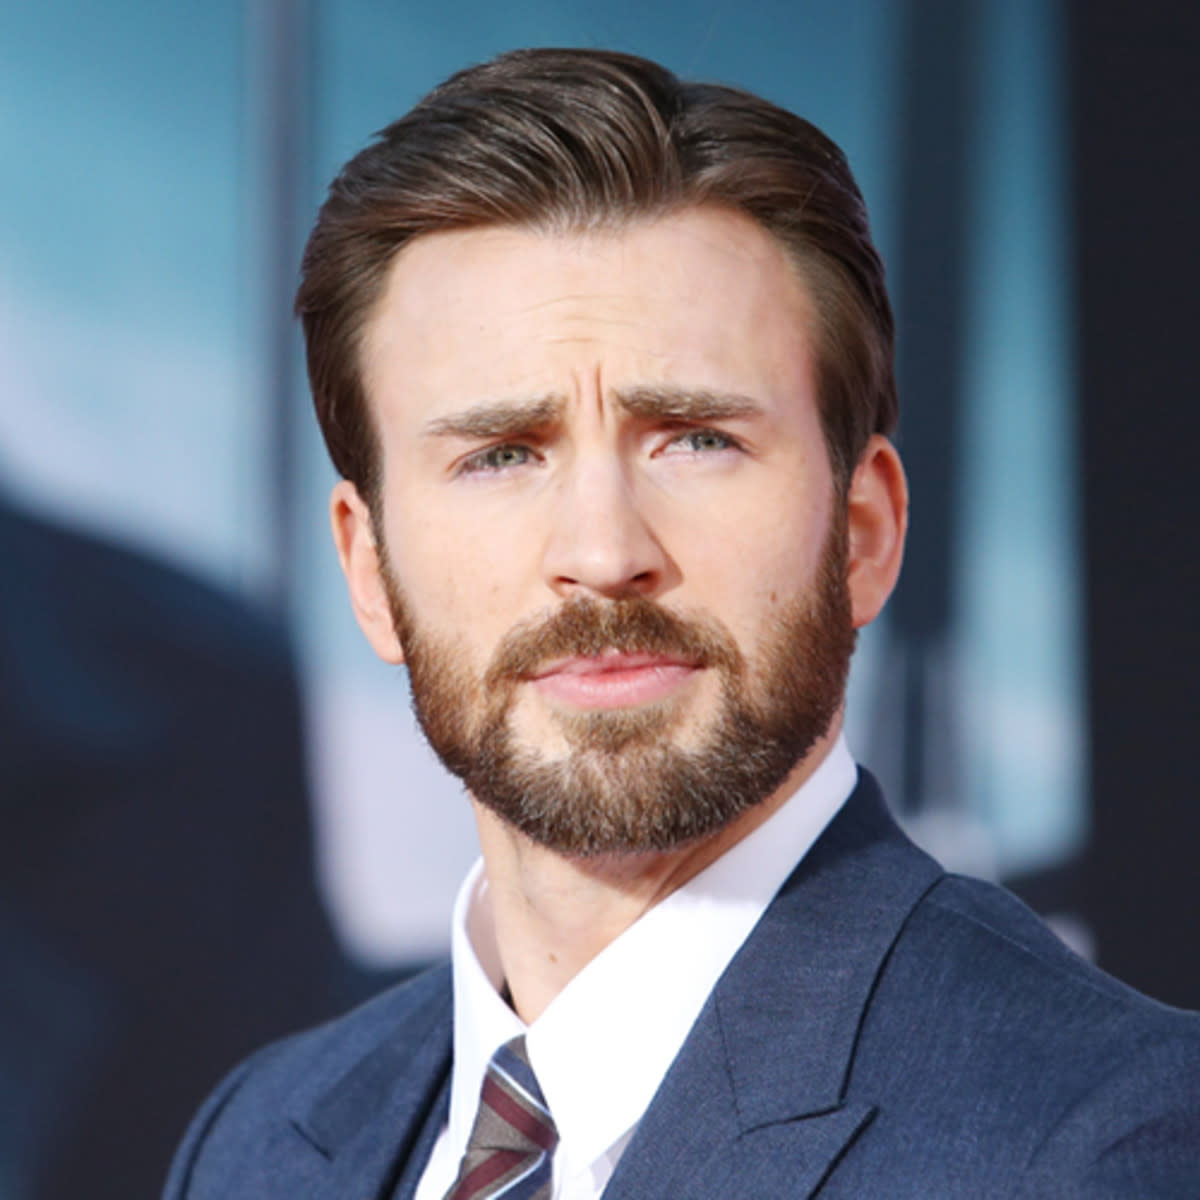 Actor Chris Evans was signed to star as Captain America in the Marvel series in 2010 after an audition on Backstage.